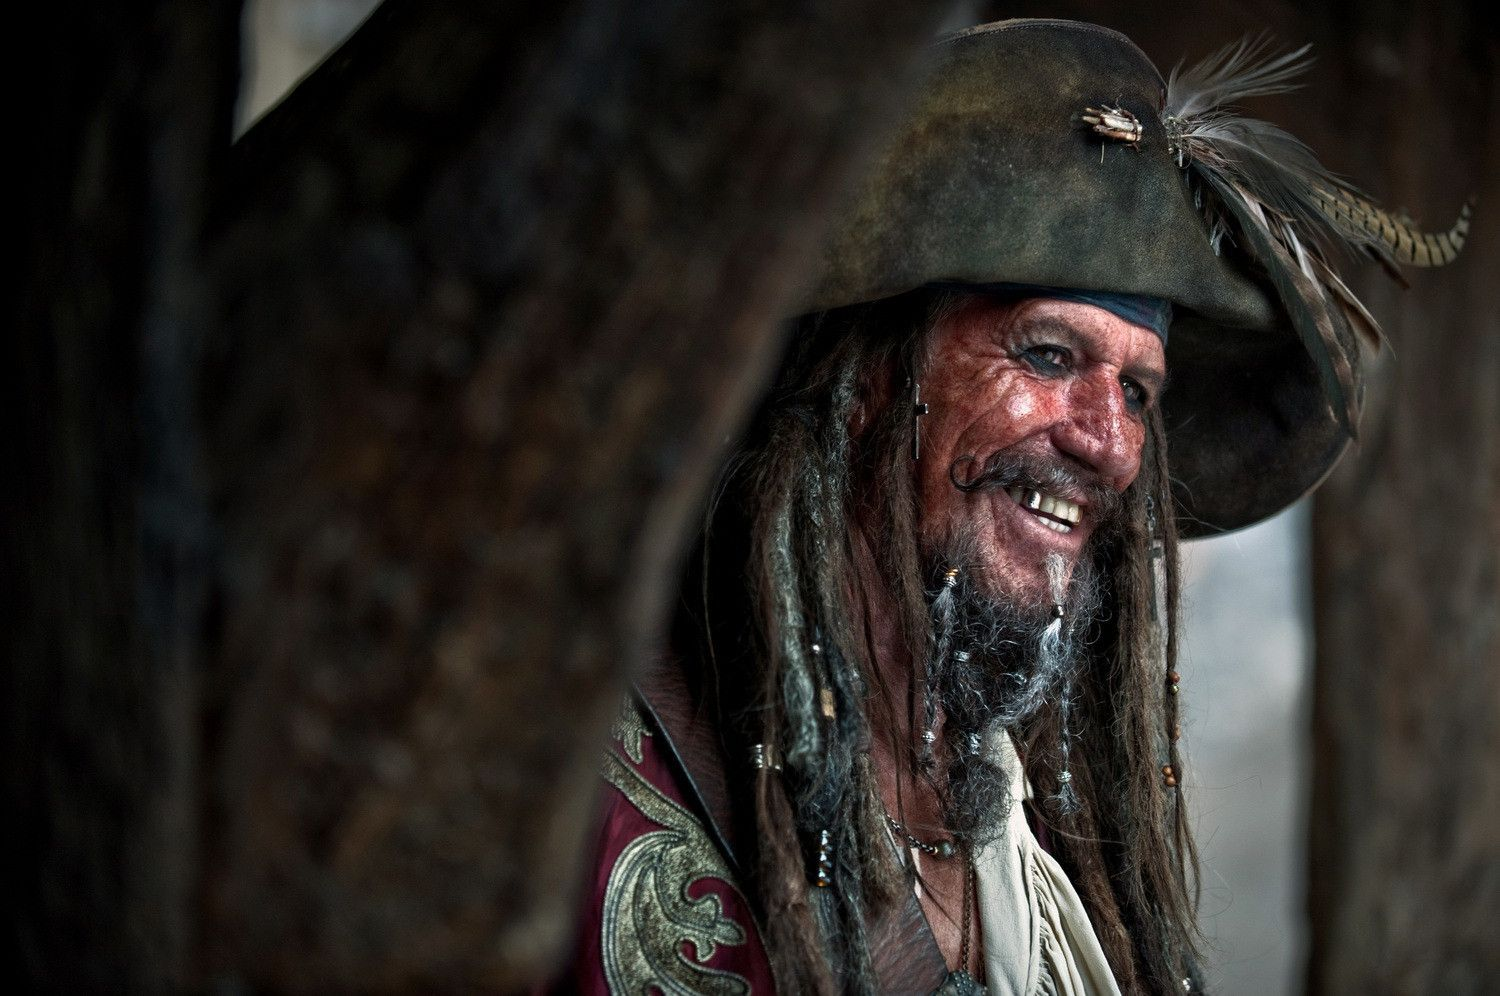 Keith Richards as Captain Edward Teague, Keeper of the Pirate Codex